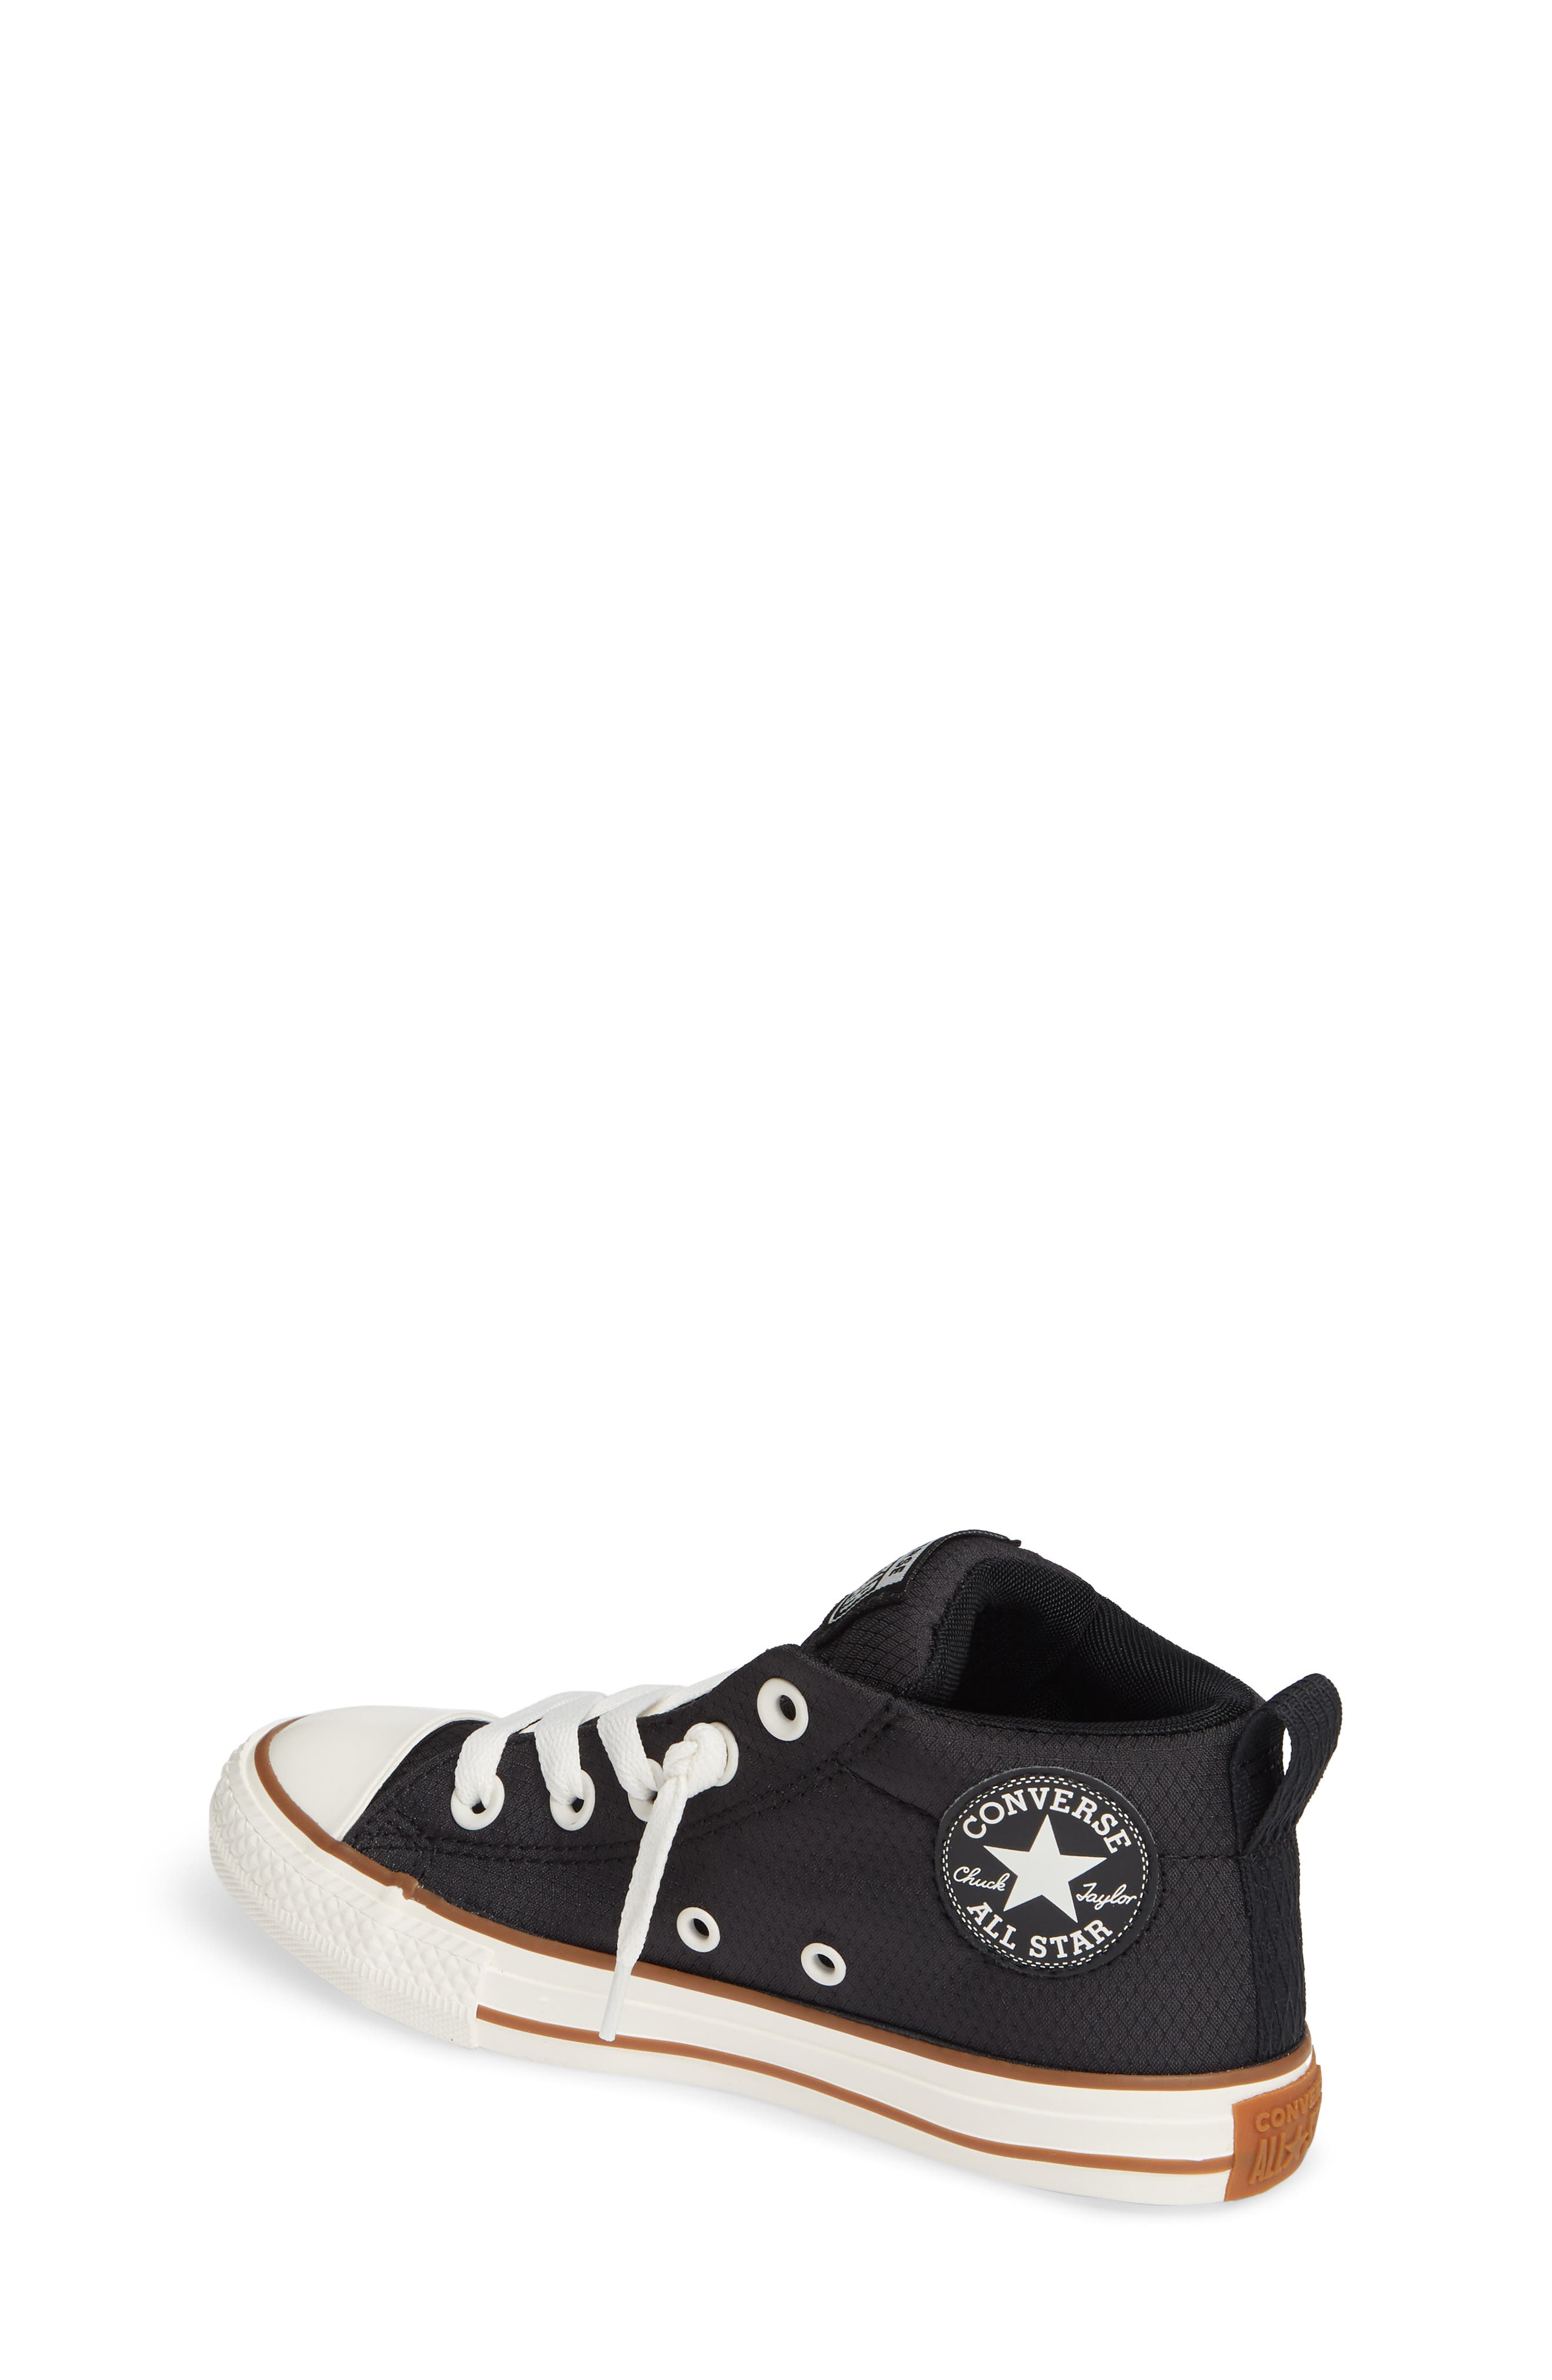 CONVERSE, Chuck Taylor<sup>®</sup> All Star<sup>®</sup> Street Mid Top Sneaker, Alternate thumbnail 2, color, 002